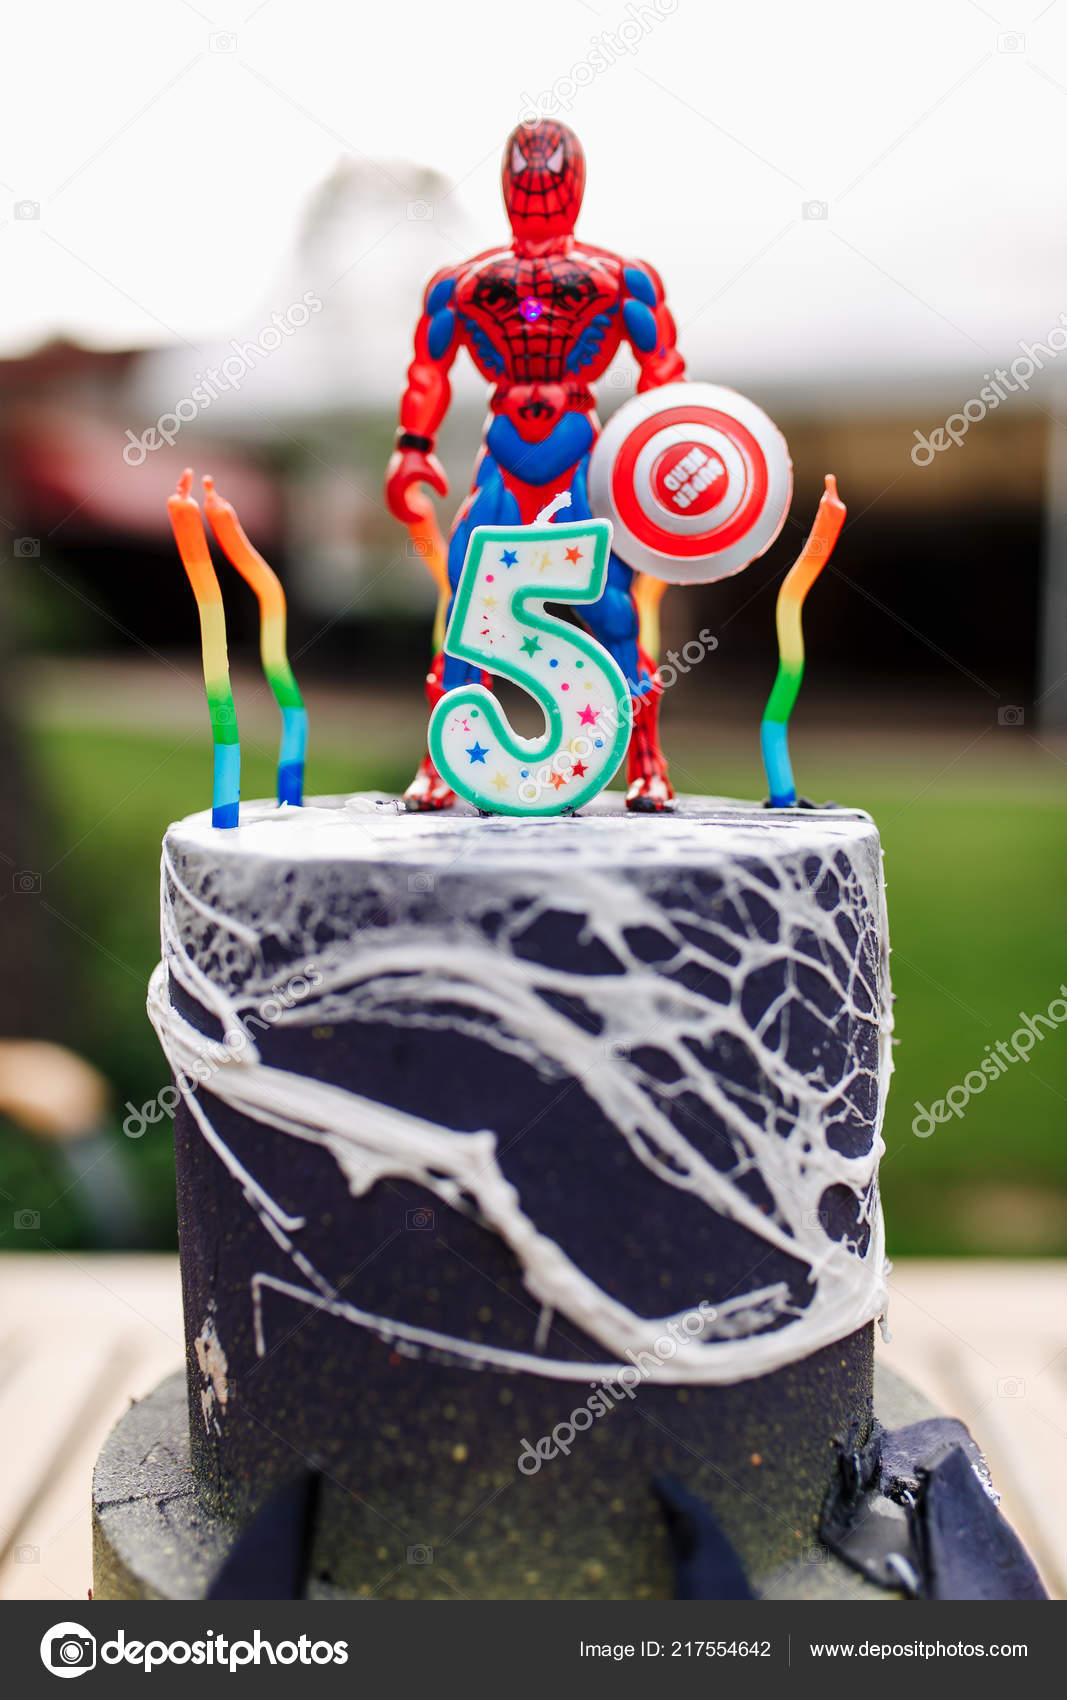 Swell Images Spider Man Cake 5 Year Baby Birthday Cake With Spiderman Funny Birthday Cards Online Barepcheapnameinfo